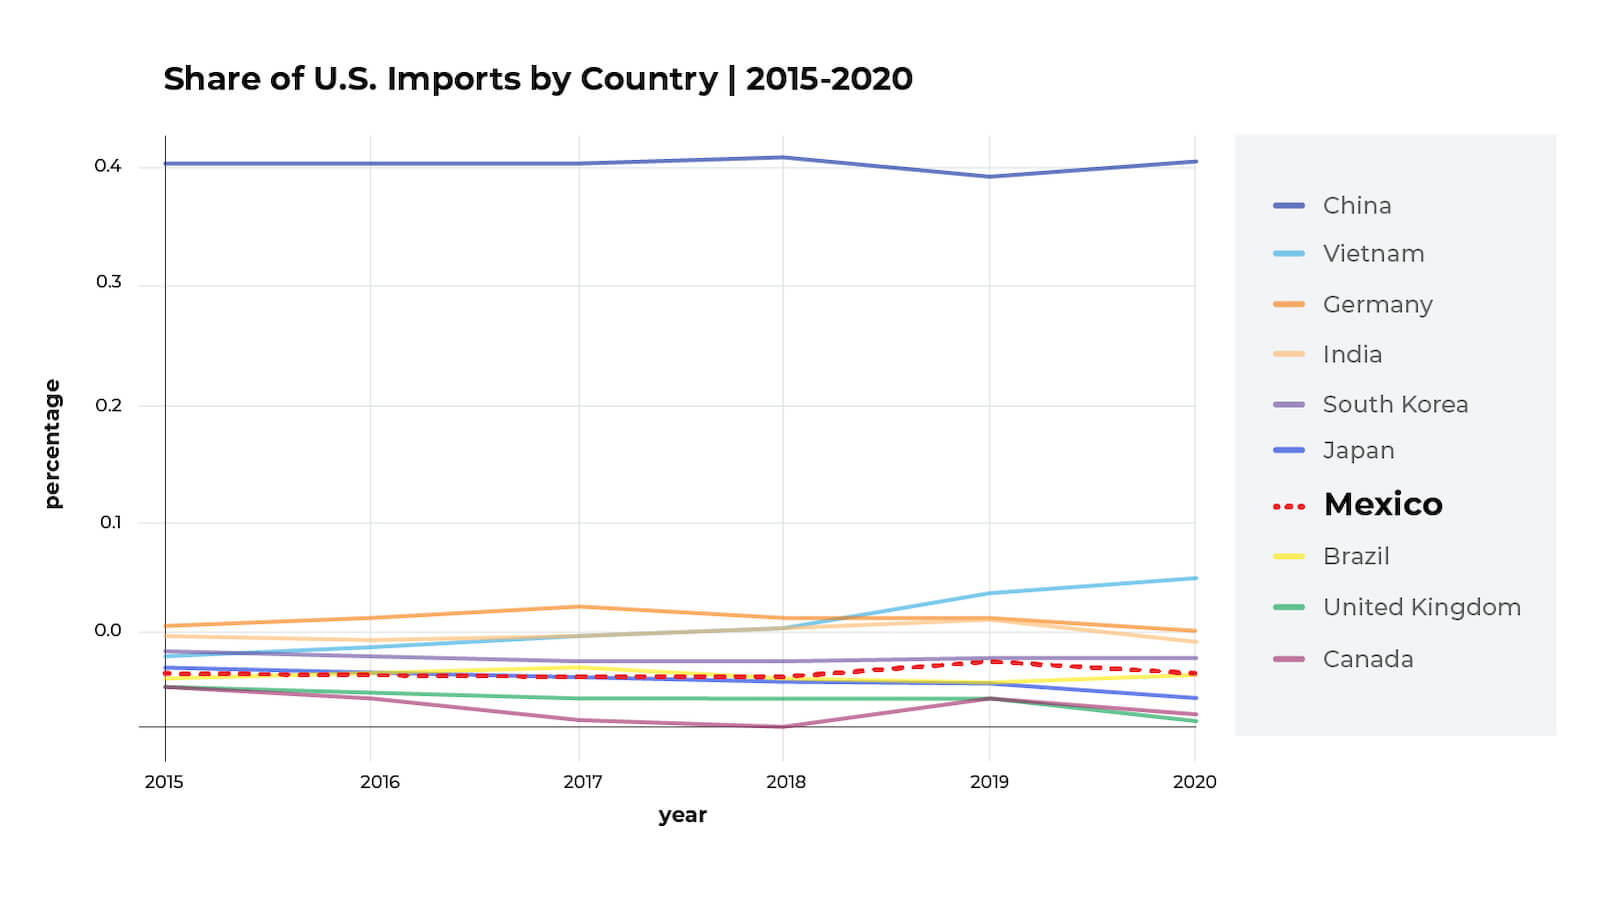 U.S. imports from Mexico